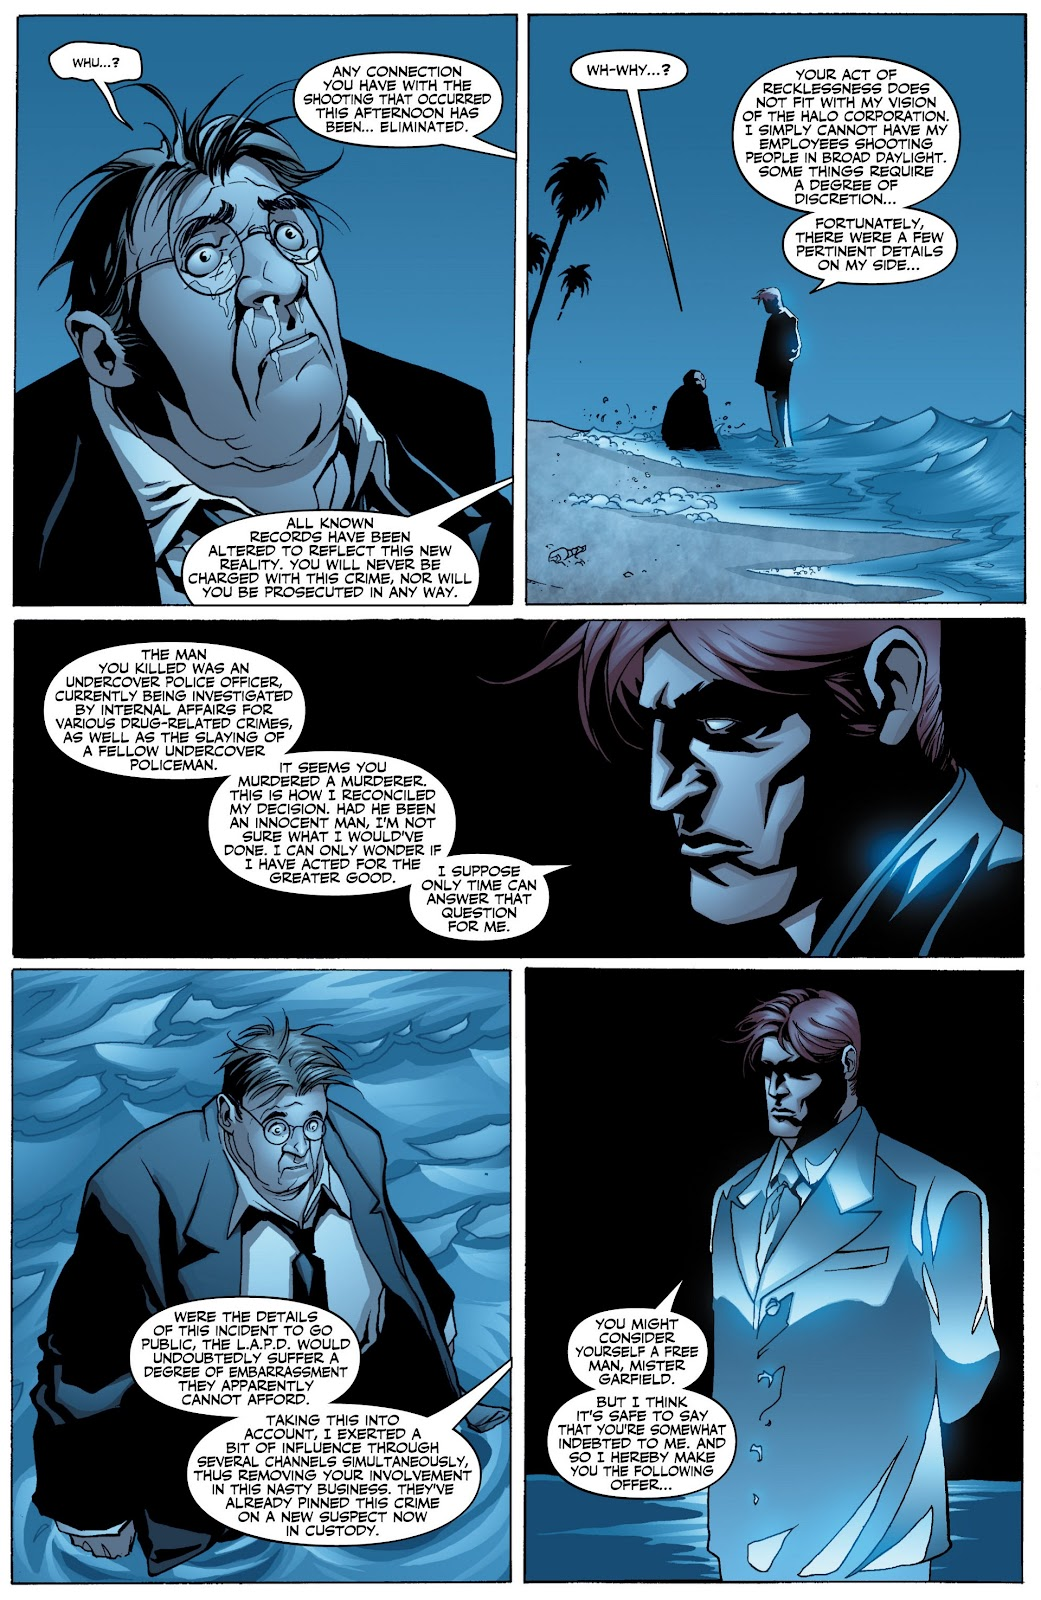 Wildcats Version 3.0 Issue #11 #11 - English 20